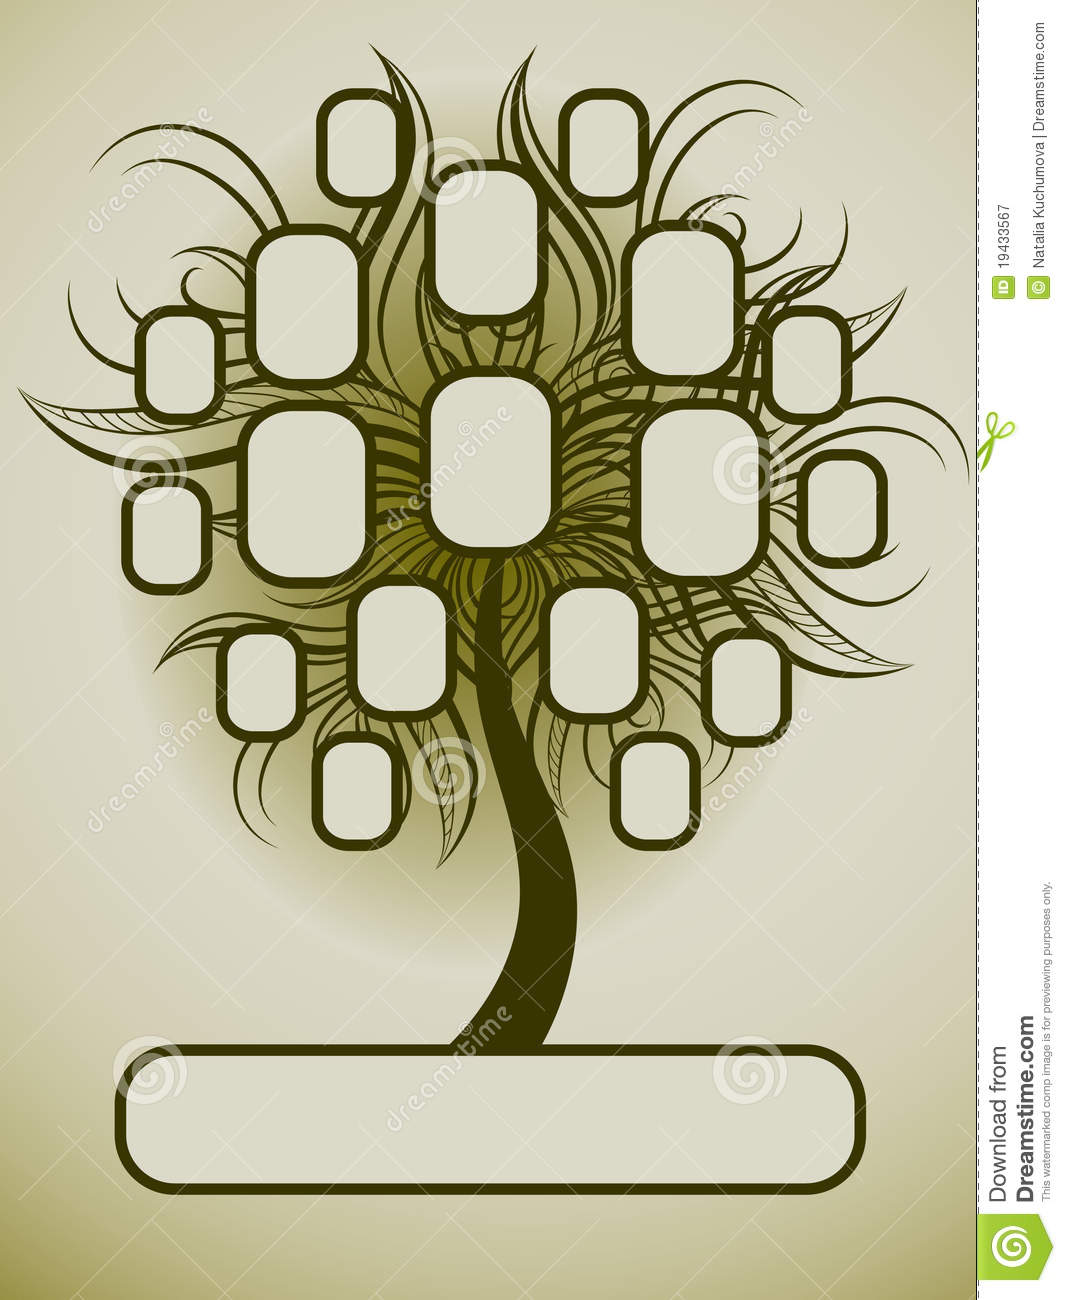 Vector Family Tree Design With Frames Stock Vector - Illustration of ...